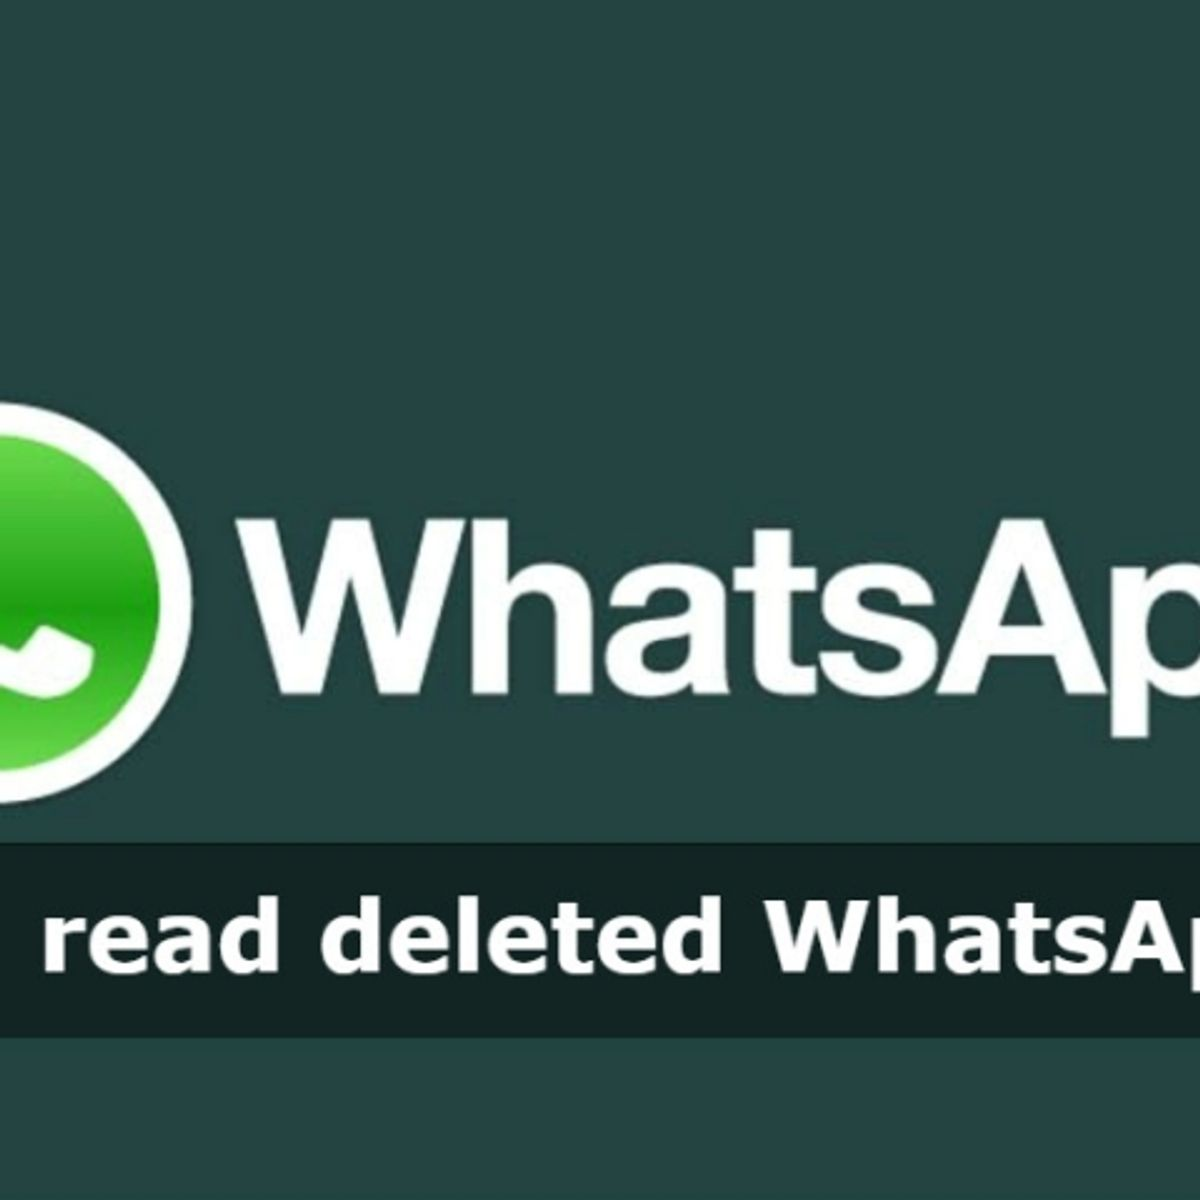 Deleted WhatsApp messages can still be read via Android